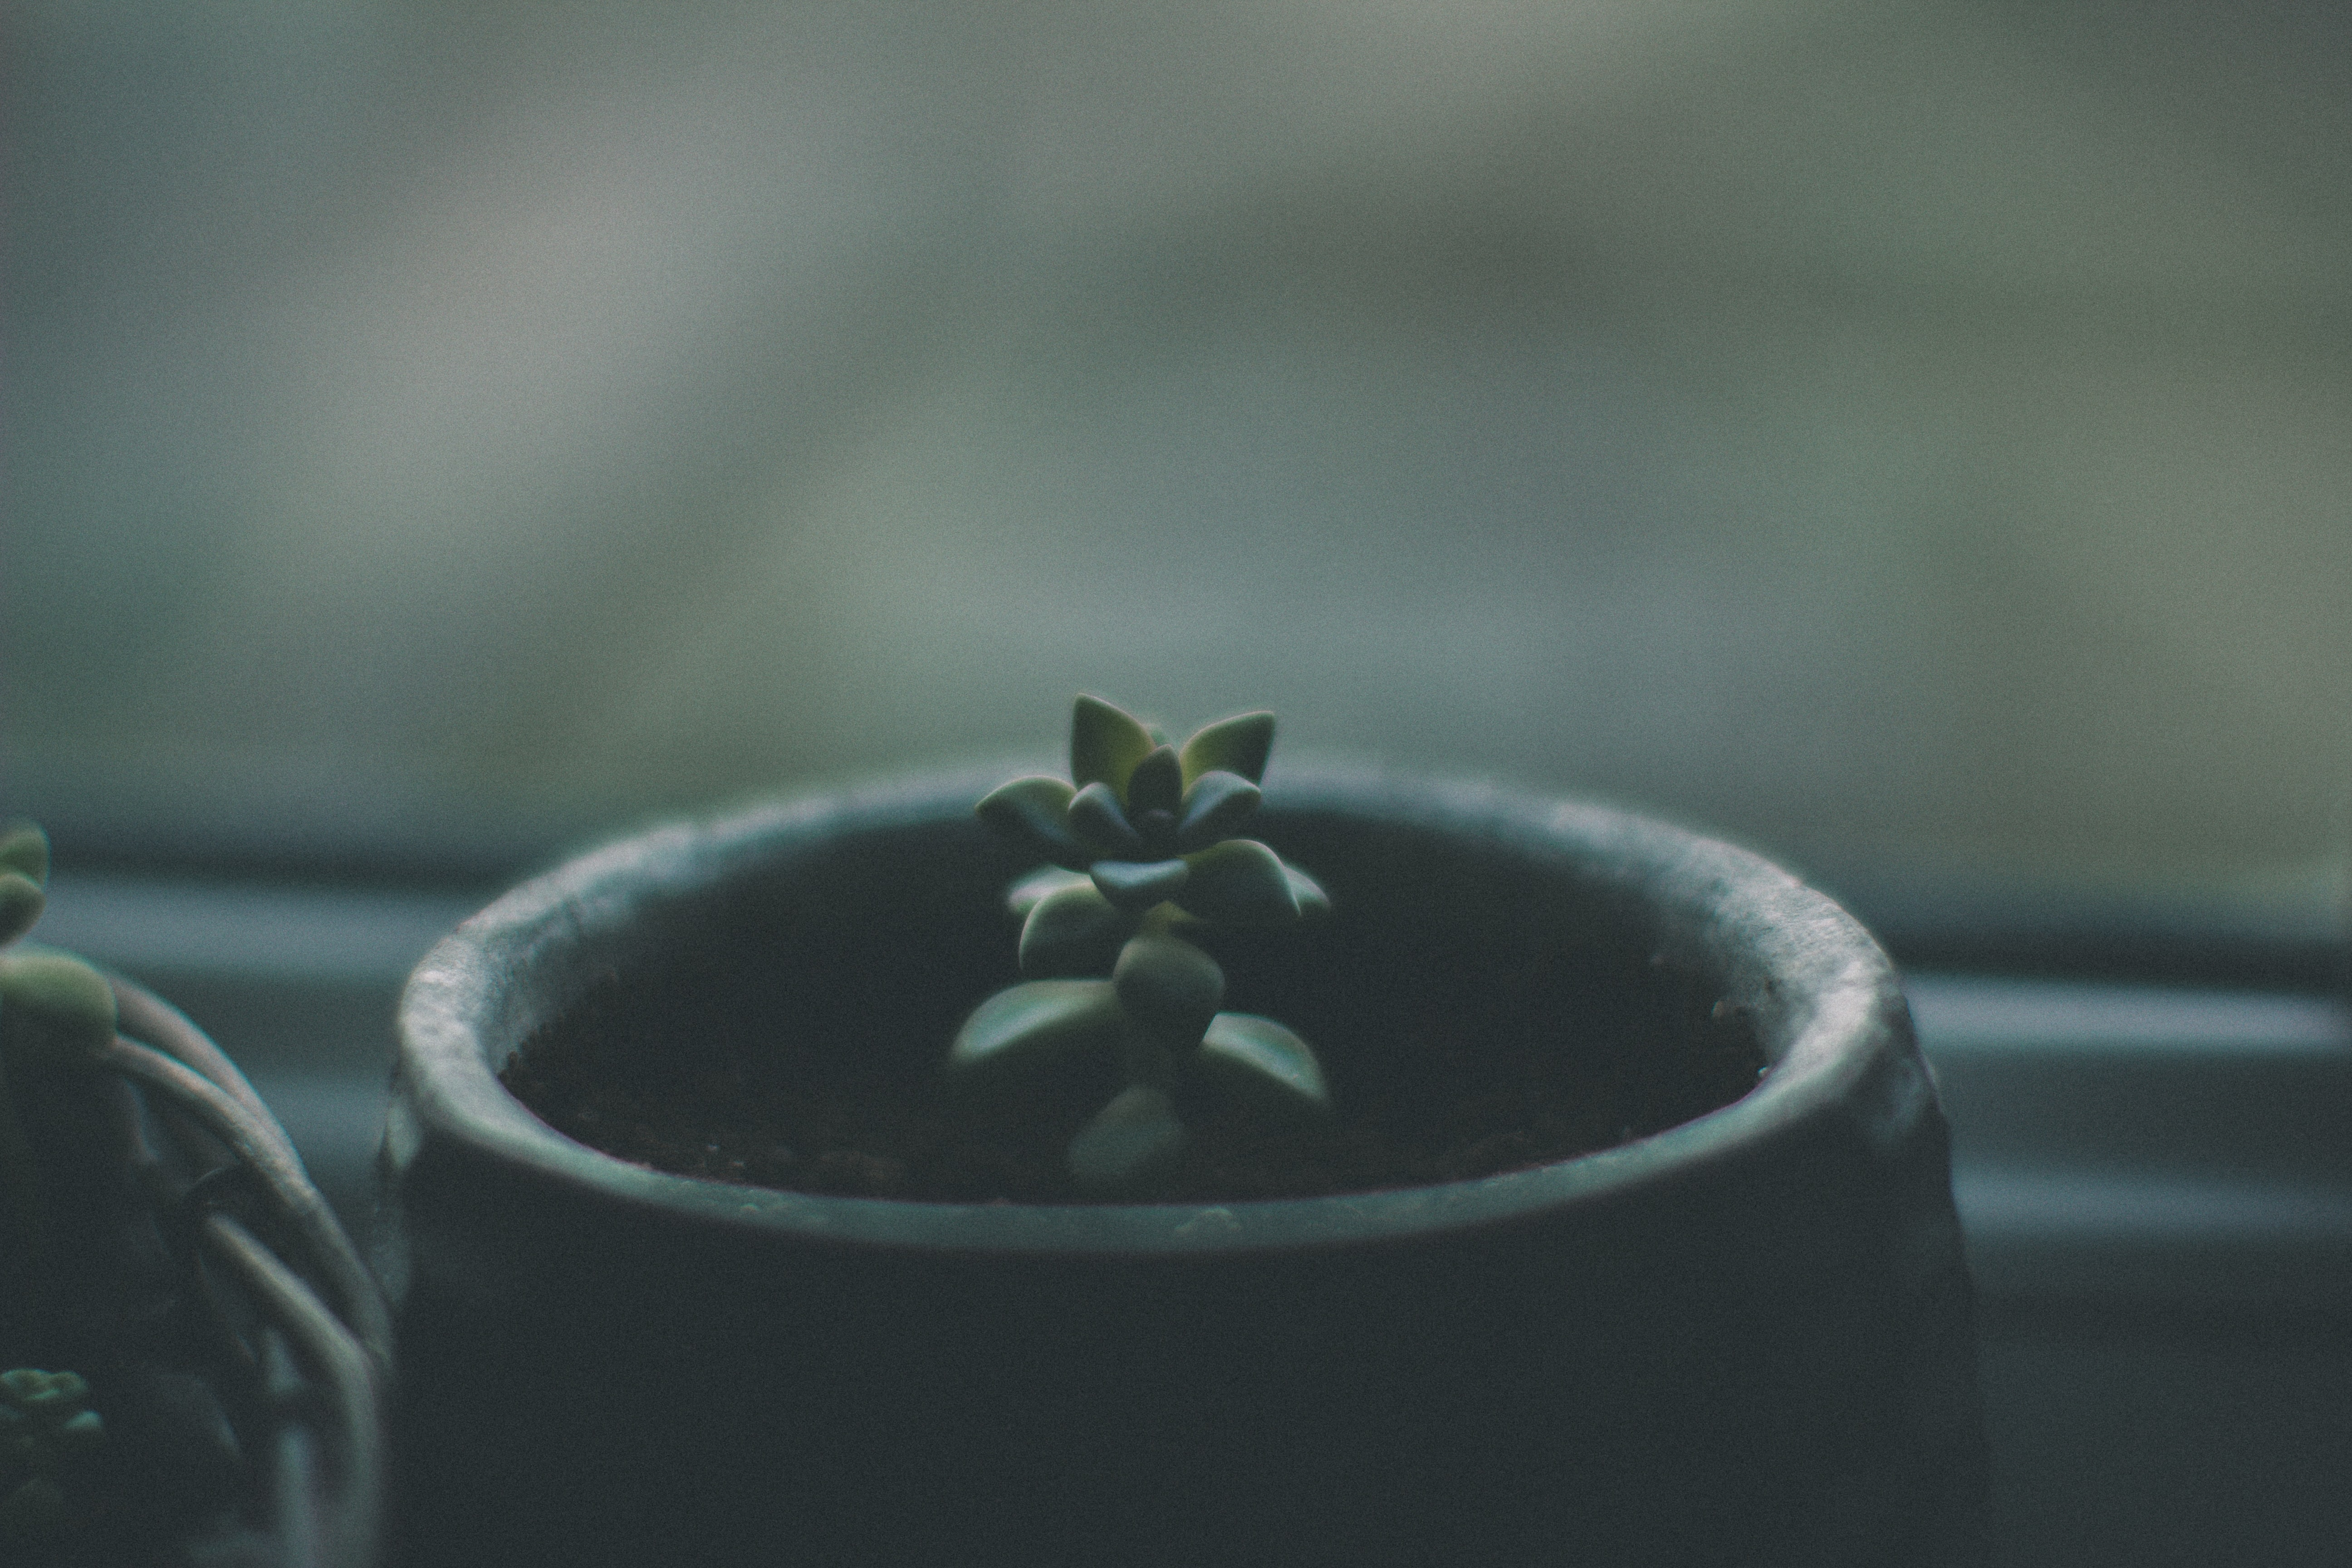 Small succulent plant sprouts from its pot near a window